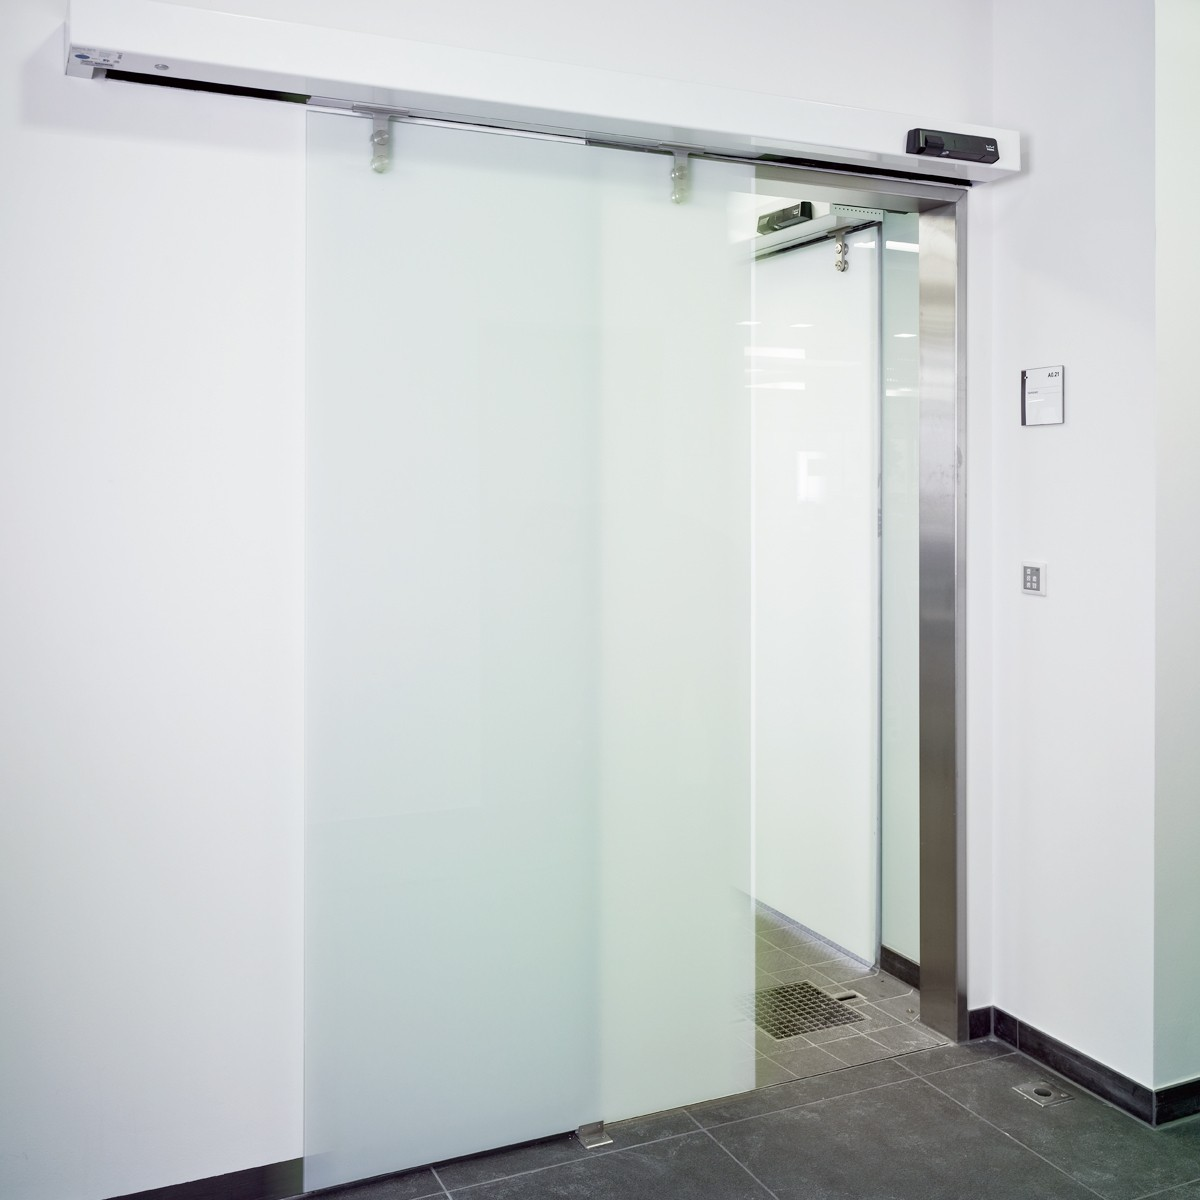 Zhongtai-Aluminium Sliding Door High Quality Laminated Frameless Glass Sliding Door-1